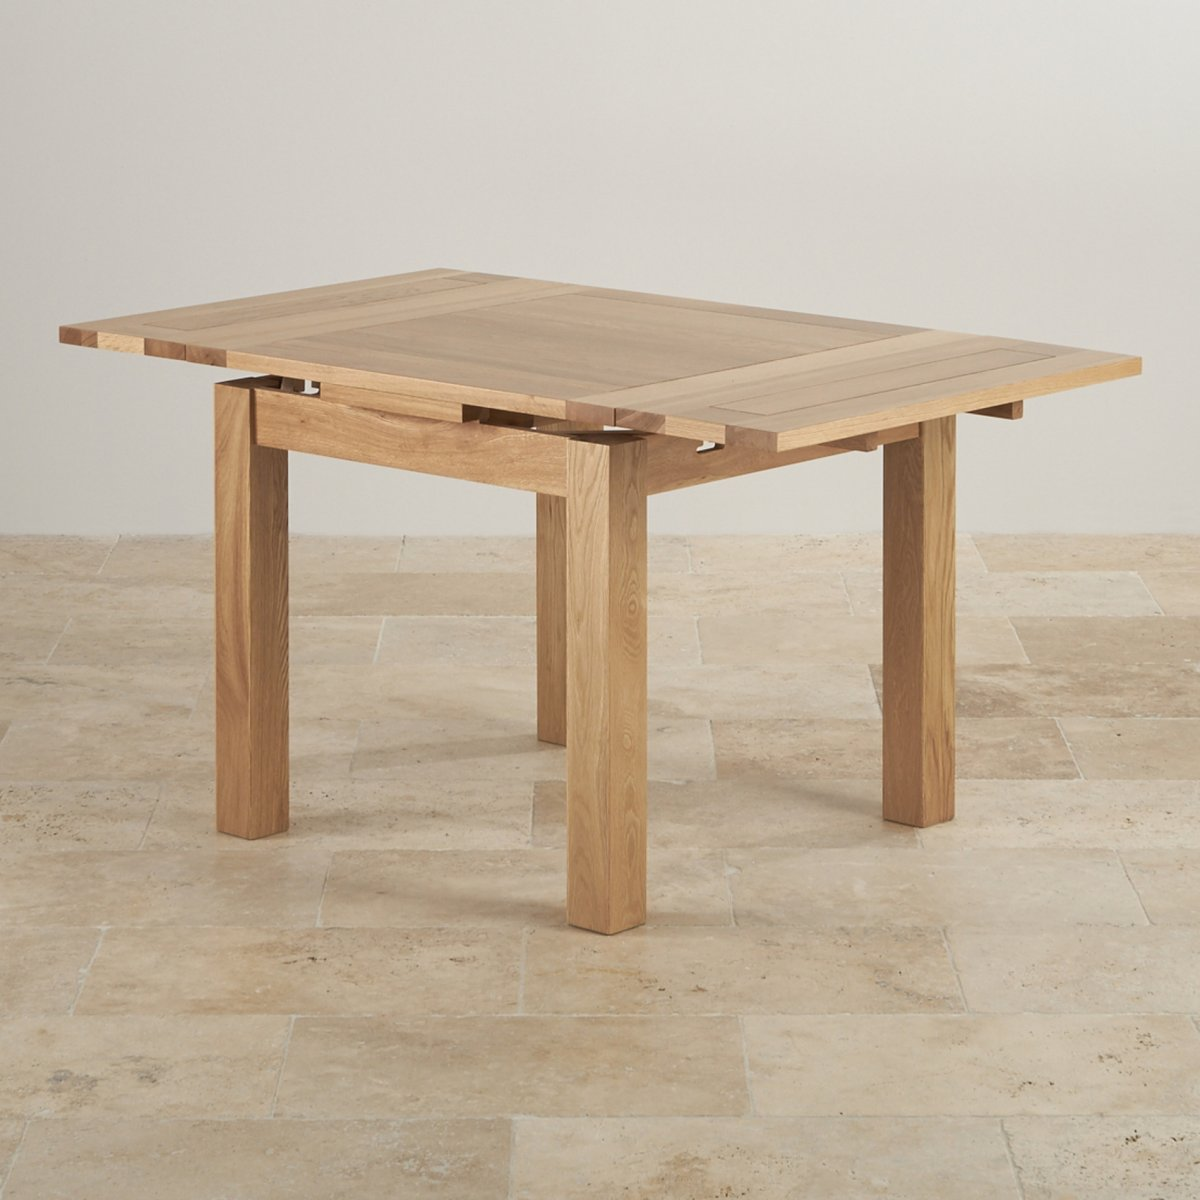 Dining Table To Seat 20 Dorset 3ft X 3ft Natural Oak Extending Dining Table Seats